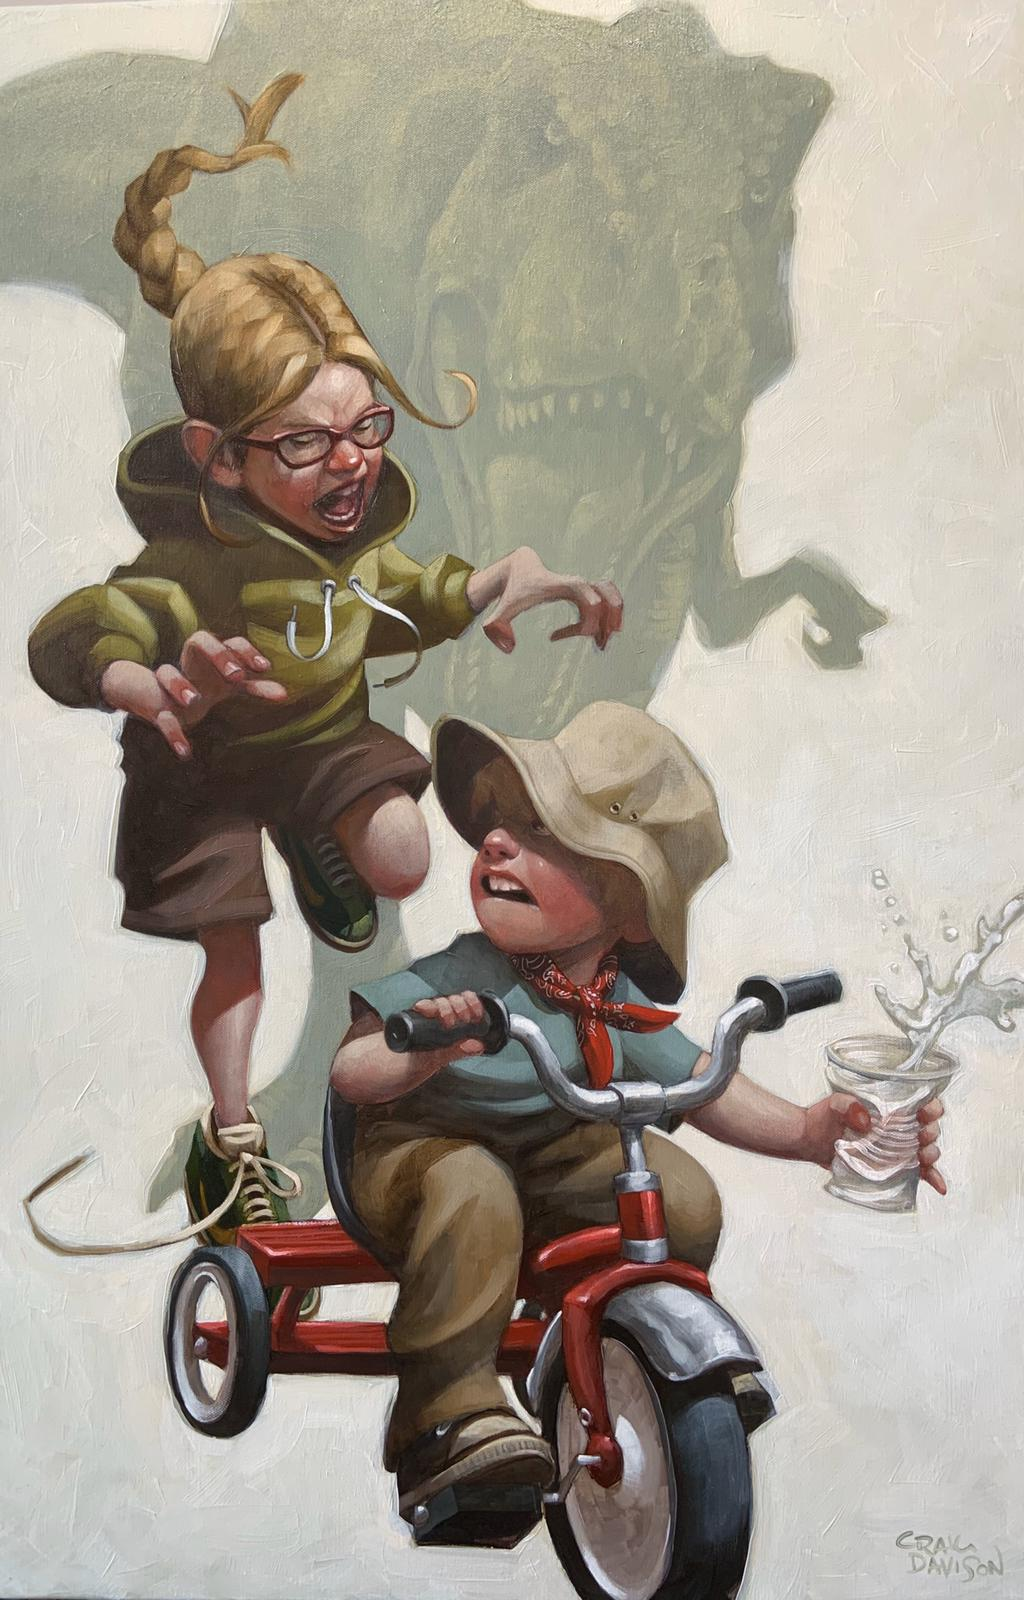 Craig Davison - ' Keep Absolutely Still, Her Vision is Based on Movement' - Limited Edition Art & Original